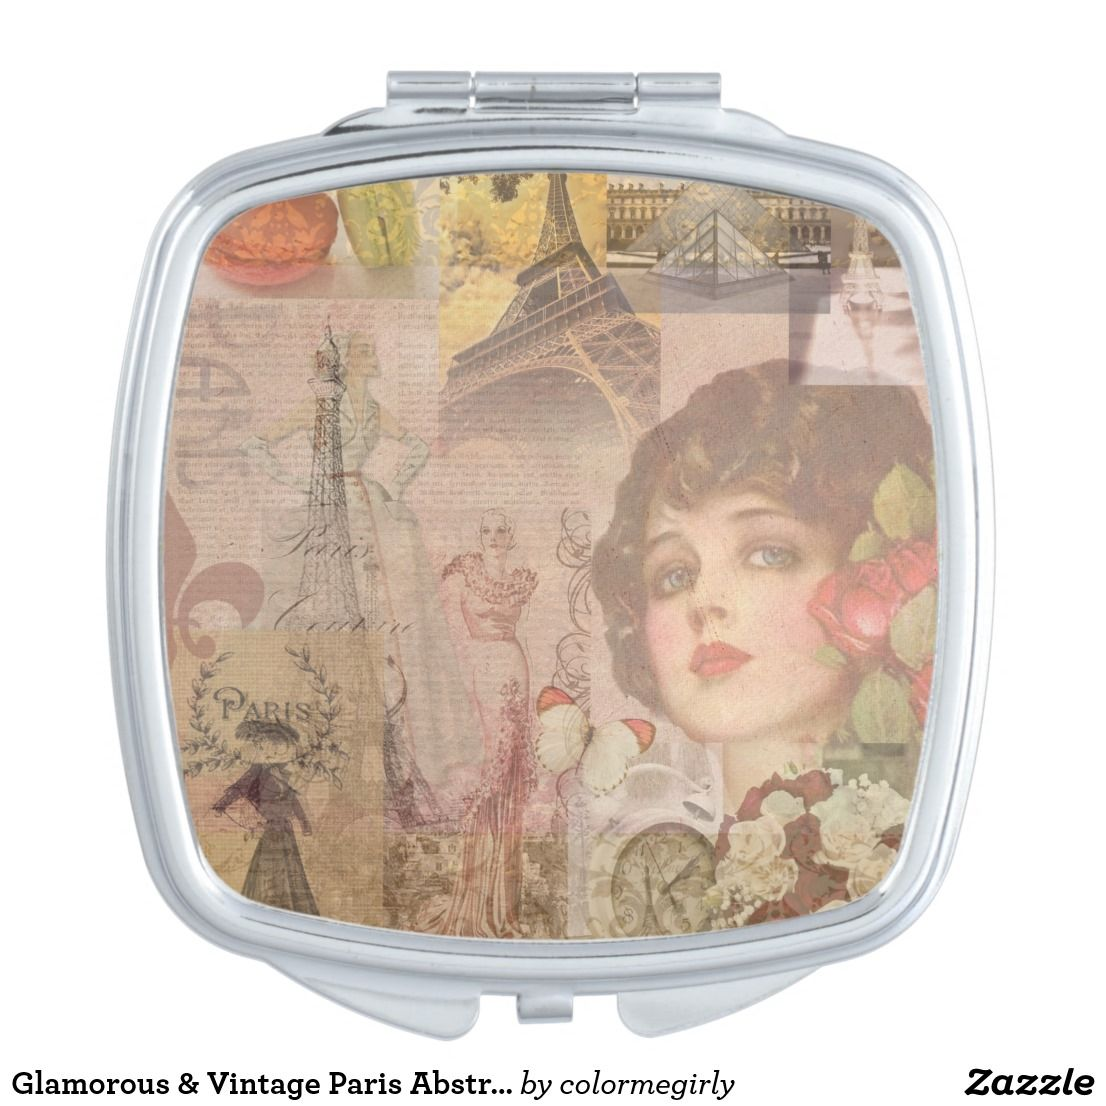 Glamorous & Vintage Paris Abstract Collage Mirror For Makeup - glamorous, vintage, paris, collage, eiffel tower, flapper, french, france, europe, retro